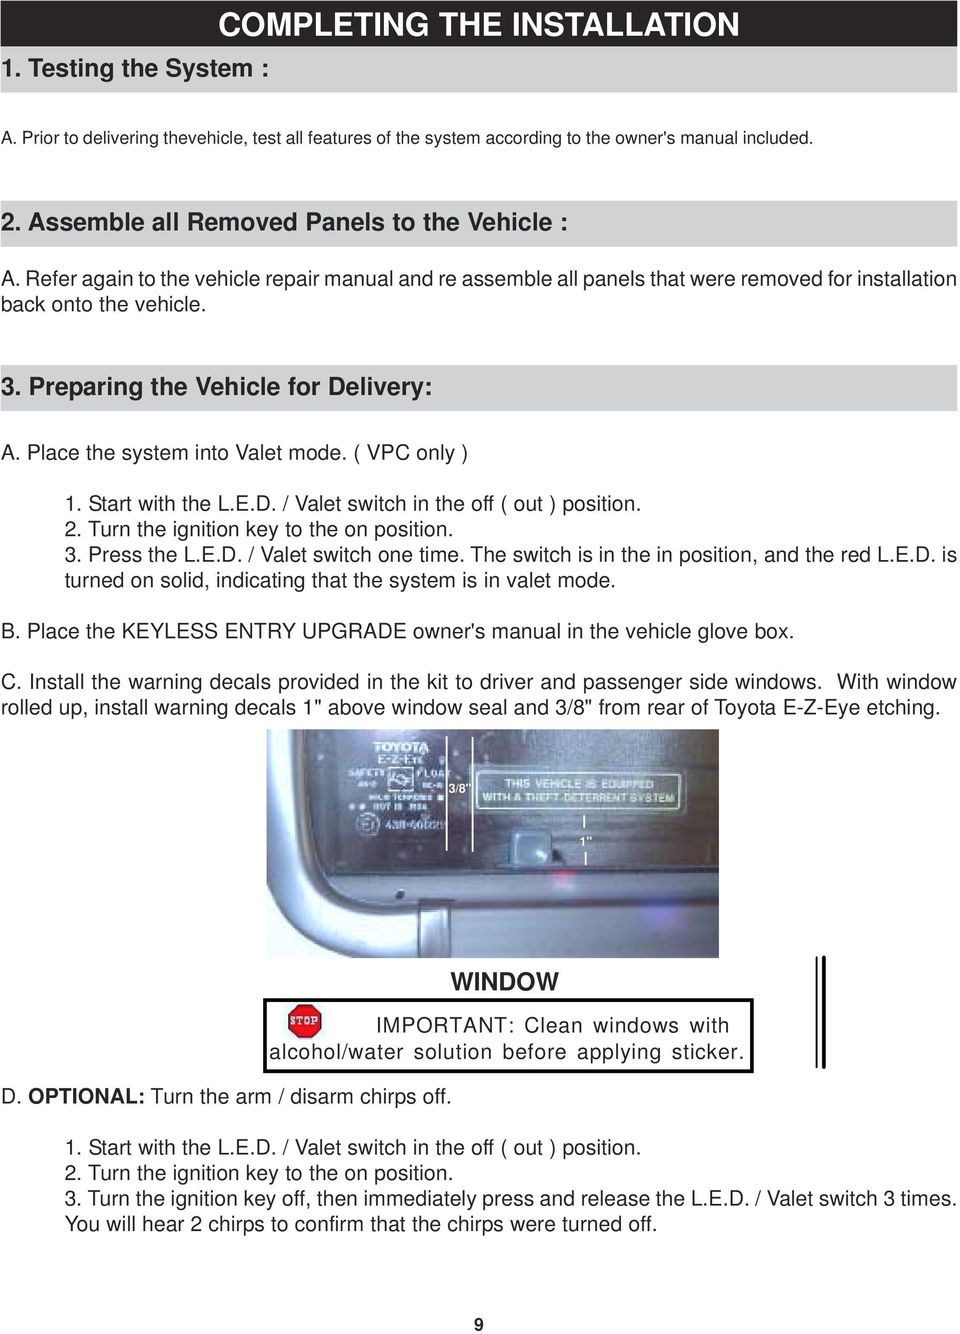 Preparing the Vehicle for Delivery: A. Place the system into Valet mode. ( VPC only ) 1. Start with the L.E.D. / Valet switch in the off ( out ) position. 2. Turn the ignition key to the on position.